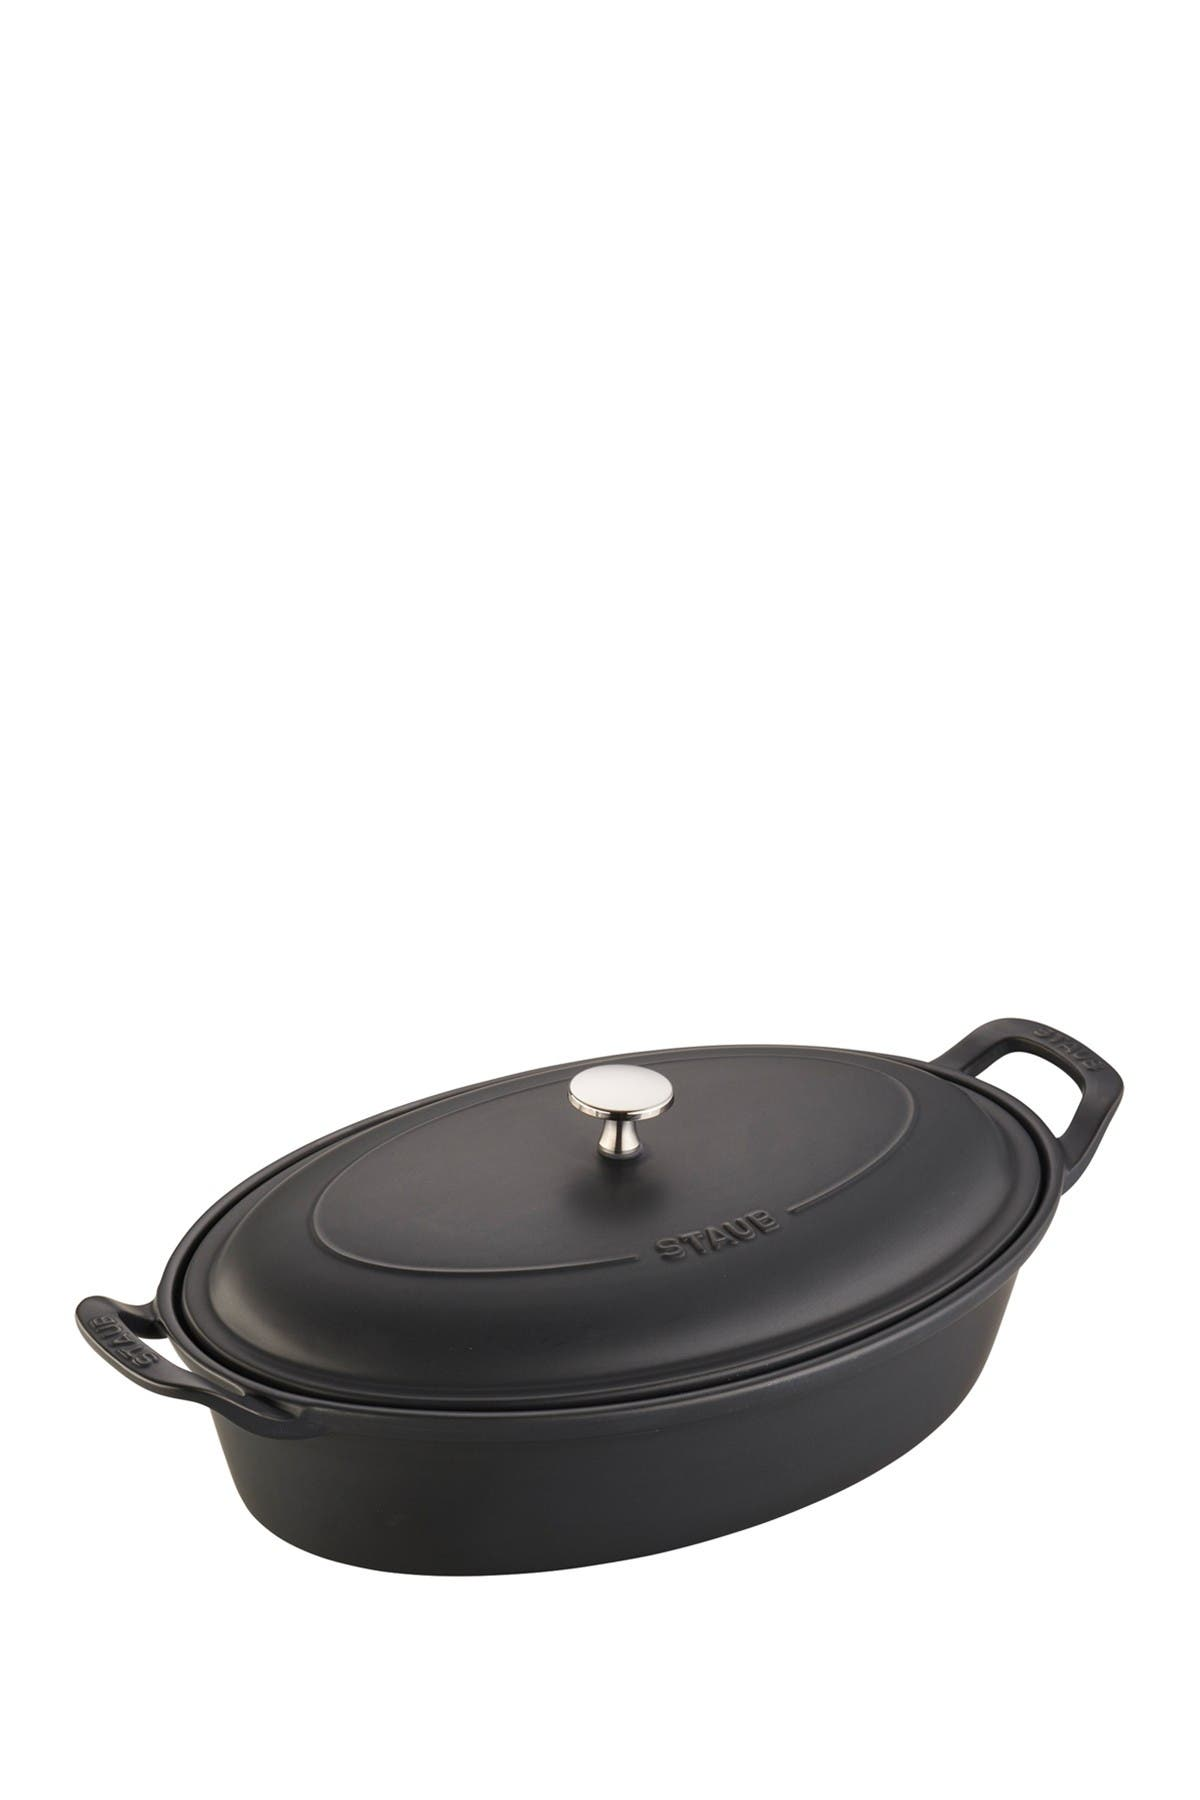 Image of Staub Ceramic 14-inch Oval Covered Baking Dish - Matte Black